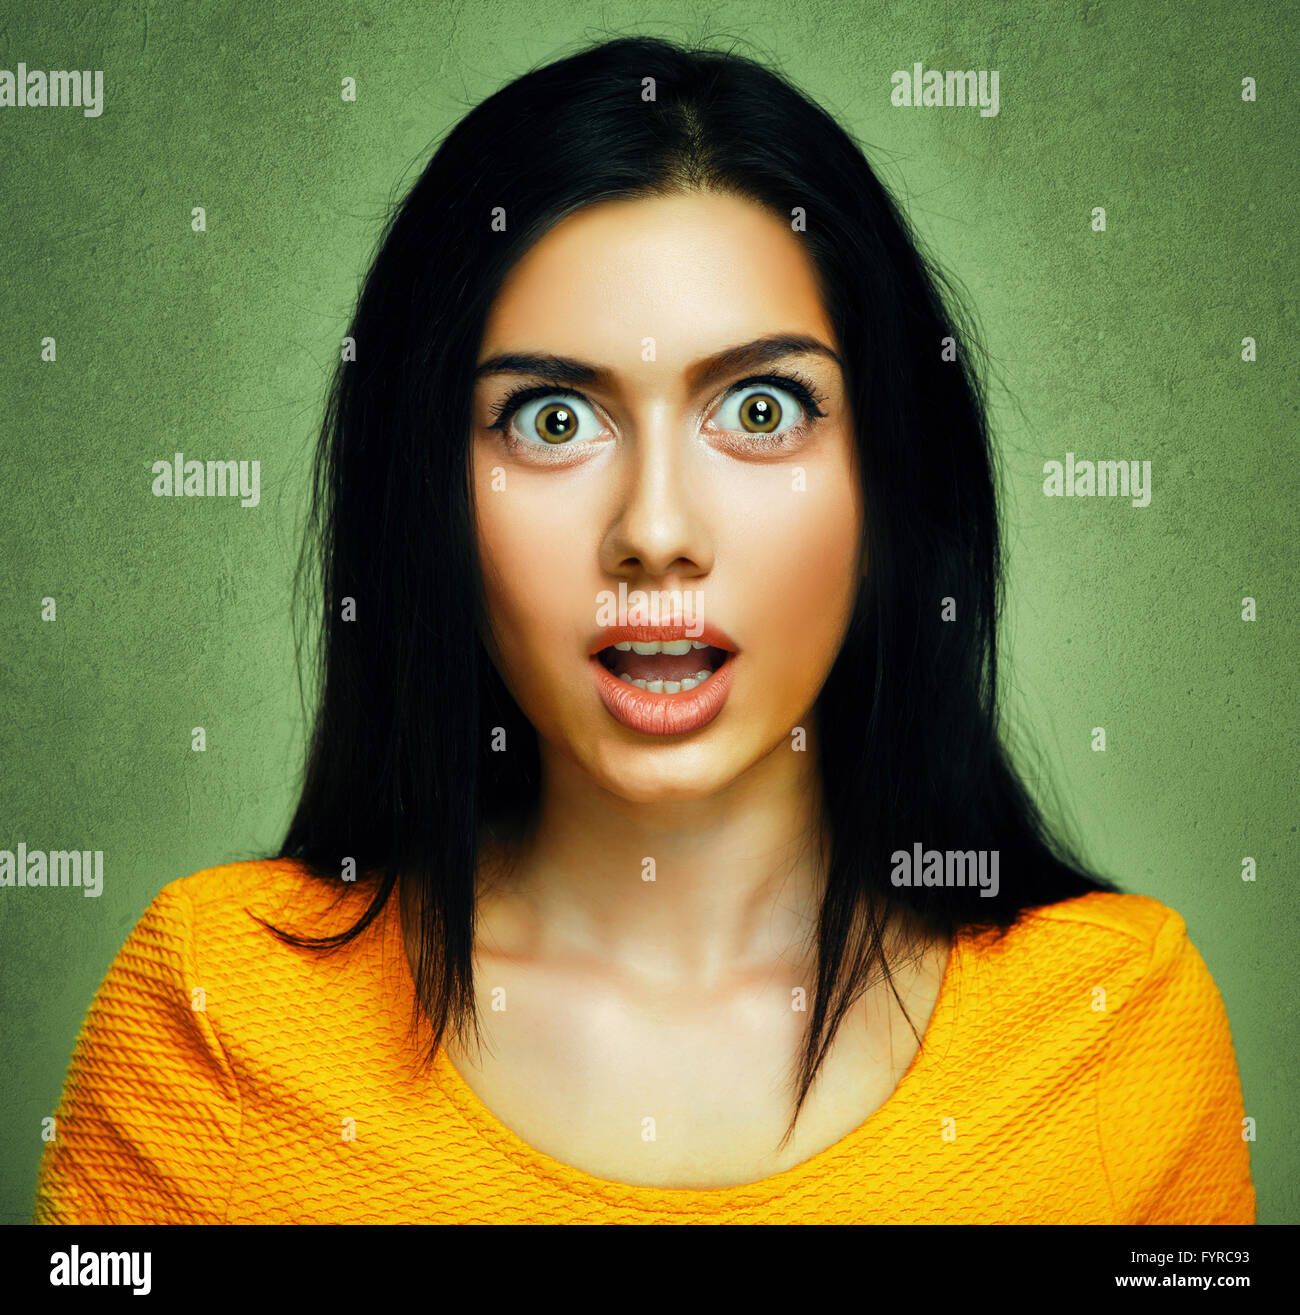 Surprised face of amazed shocked young woman - Stock Image